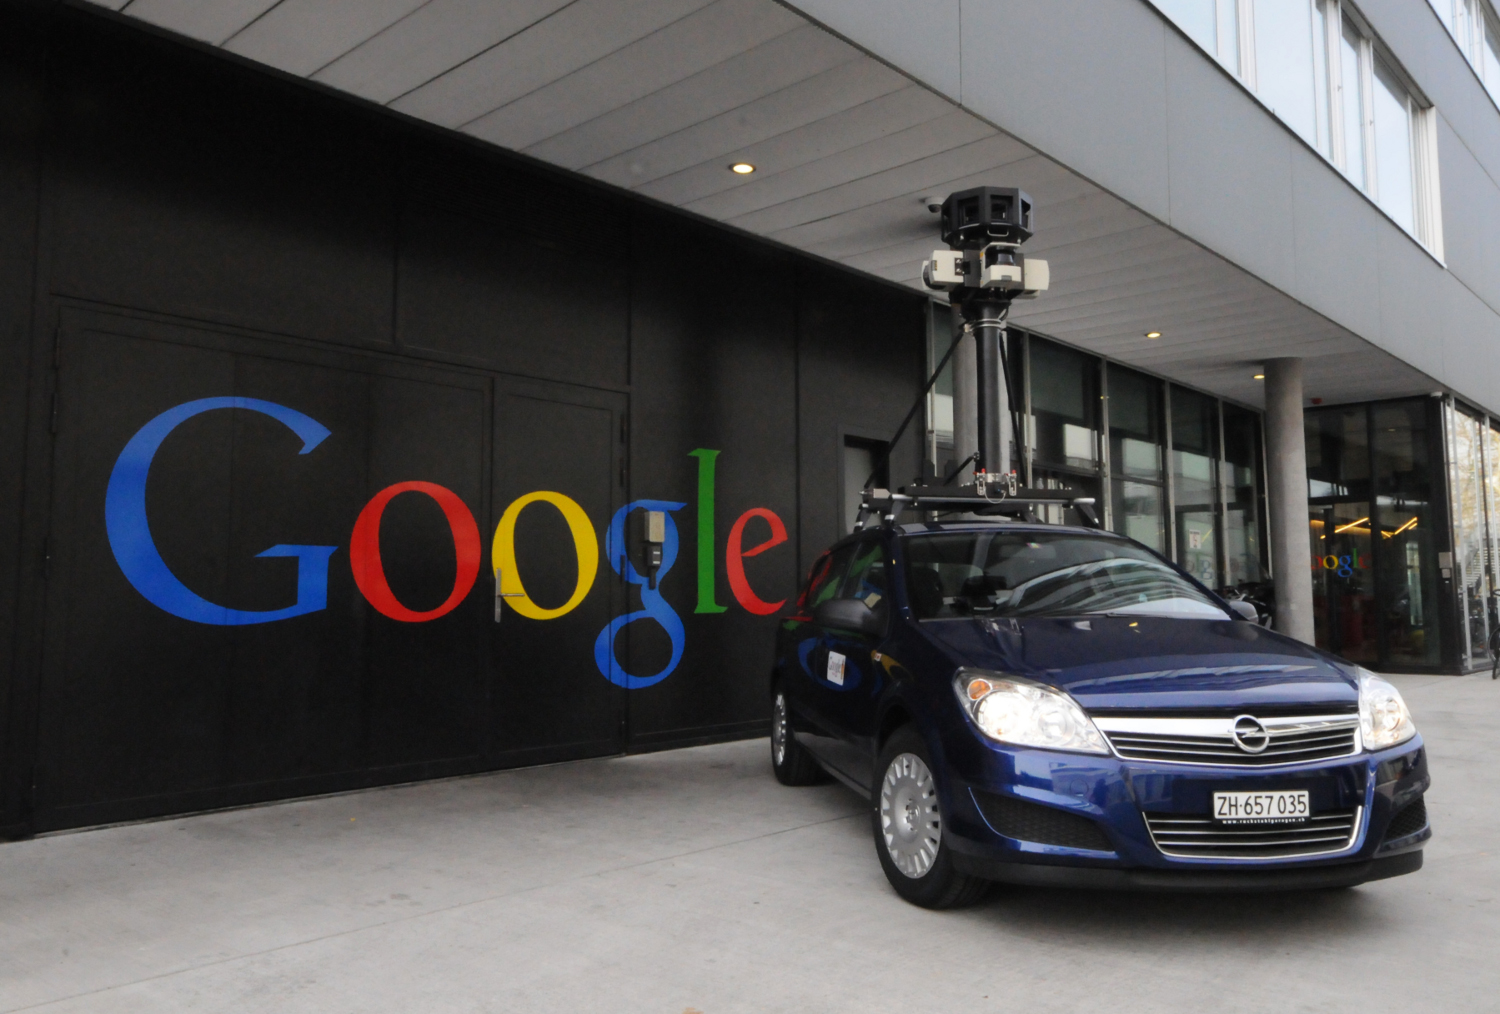 France hands record fine to Google over Street View privacy breach